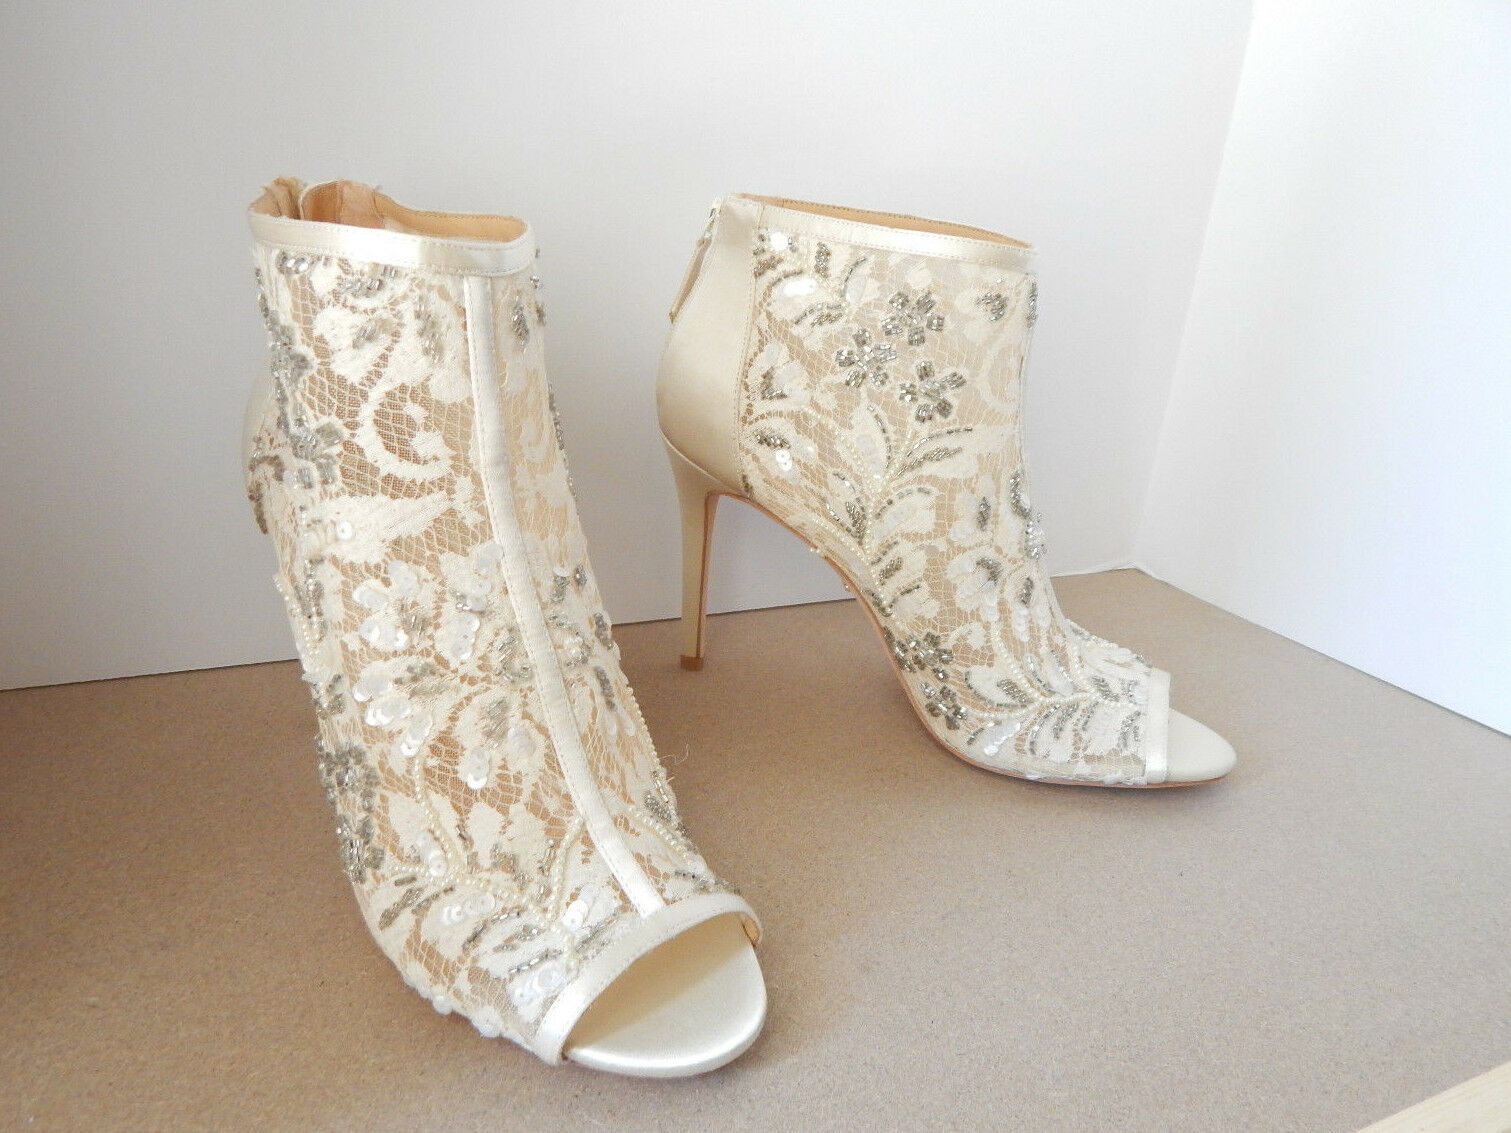 BADGLEY MISCHKA 10 ANKLE BOOTIES LACE SATIN  IVORY MOYRA SOLD OUT  SATIN 225 EUC 5b7f53